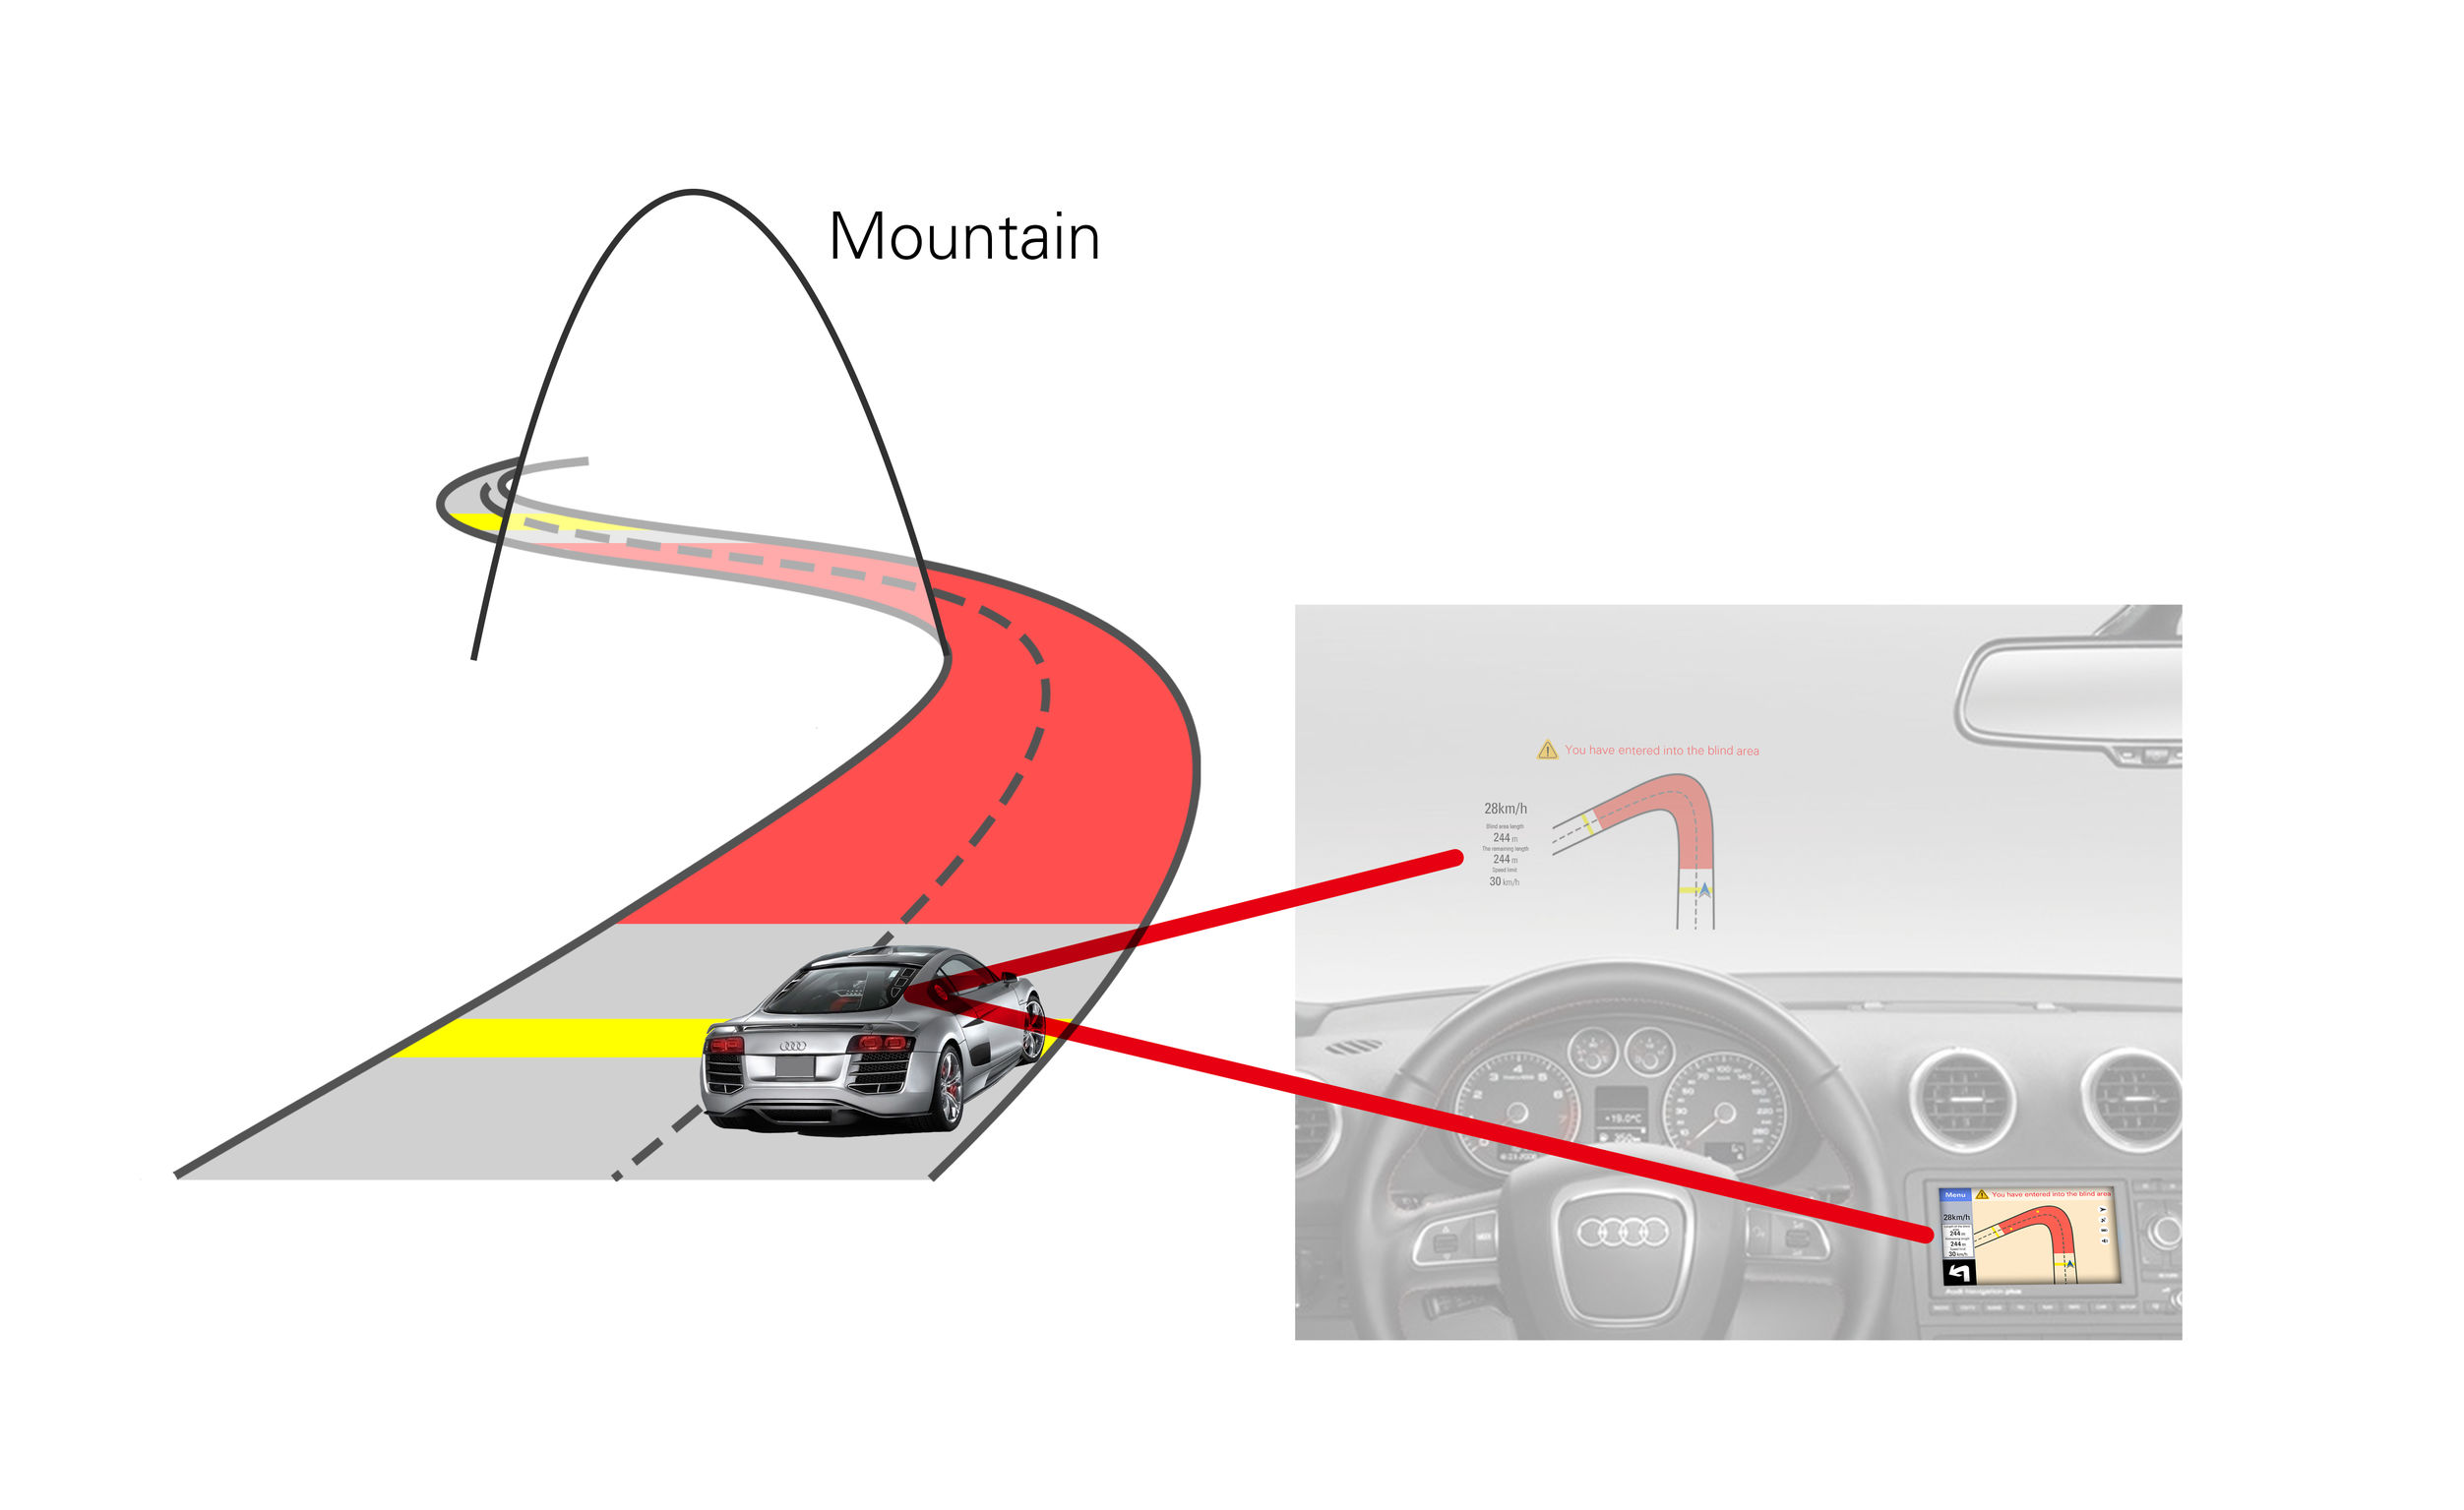 GPS monitor system Entry iF WORLD DESIGN GUIDE